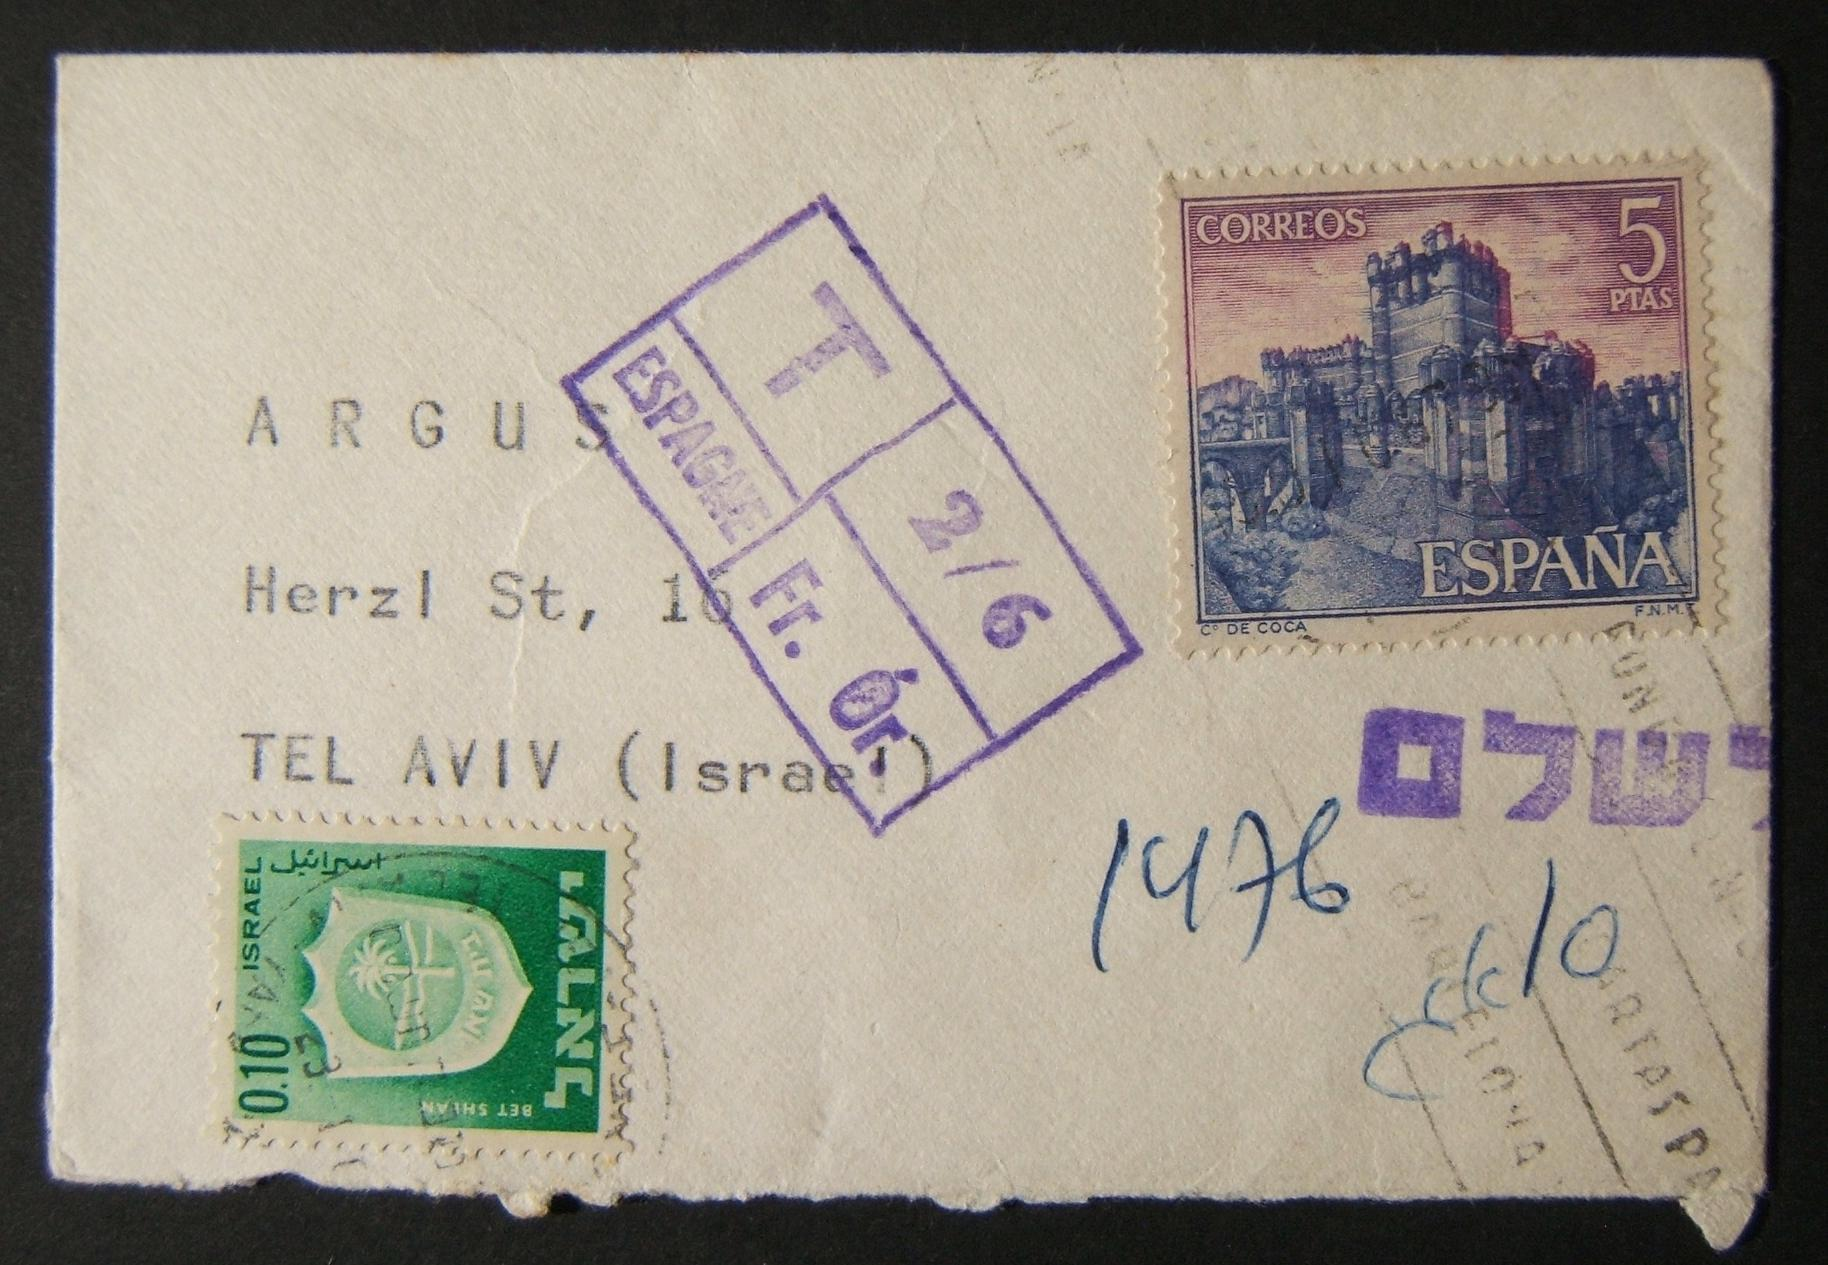 1967 incoming Spanish taxed mail: late 1967 surface mailed(?) greeting card sized cover ex BARCELONA to TLV underfranked at 5 Pesetas and taxed 0.10L in Israel, marked by scarce